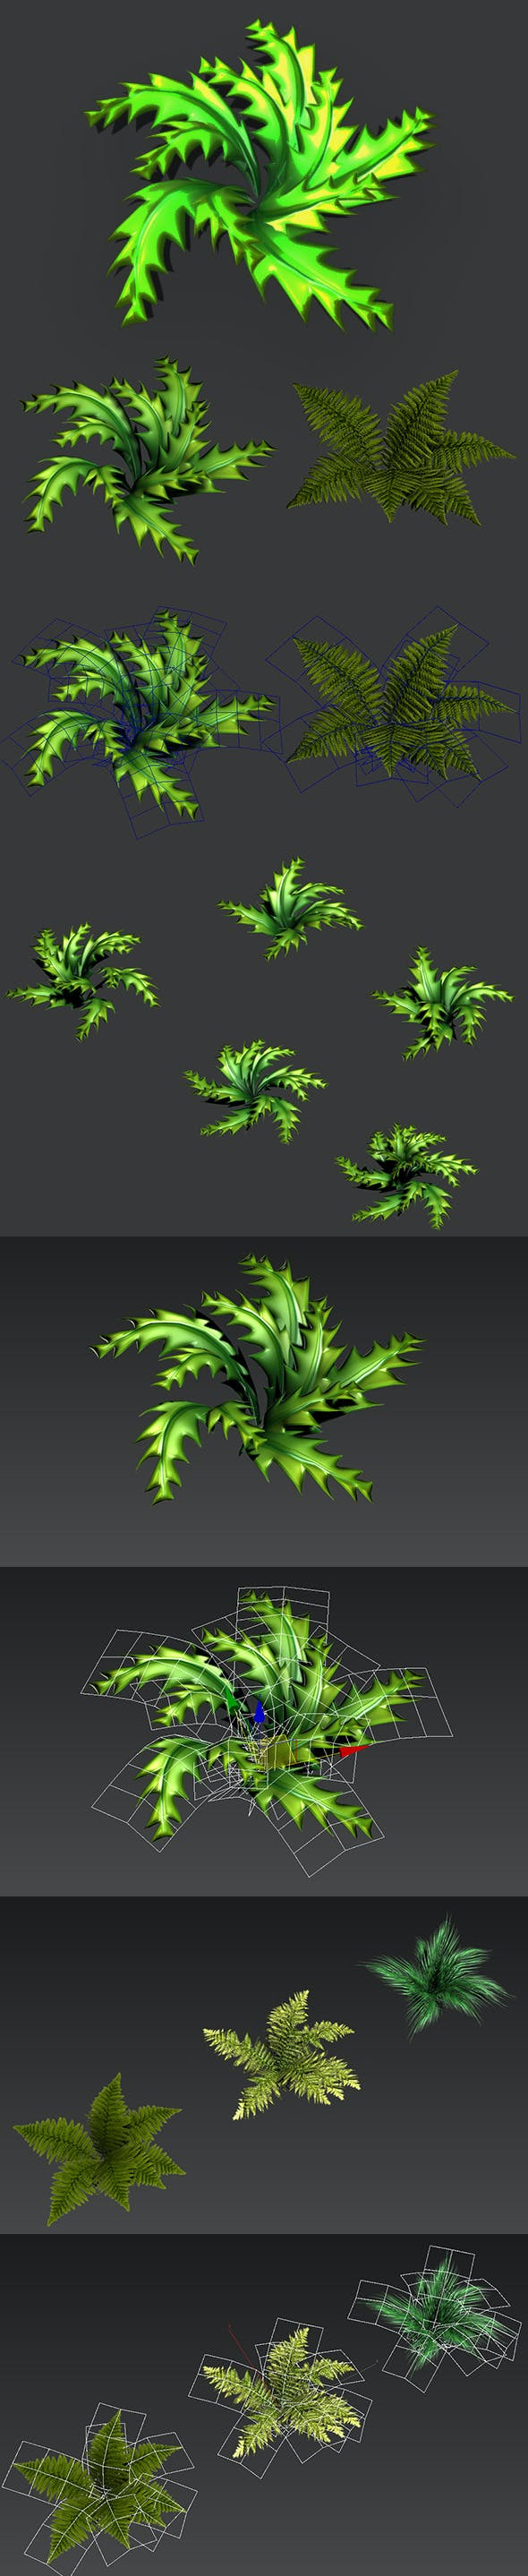 Toon and Realistic Fern Shrubs - 3DOcean Item for Sale